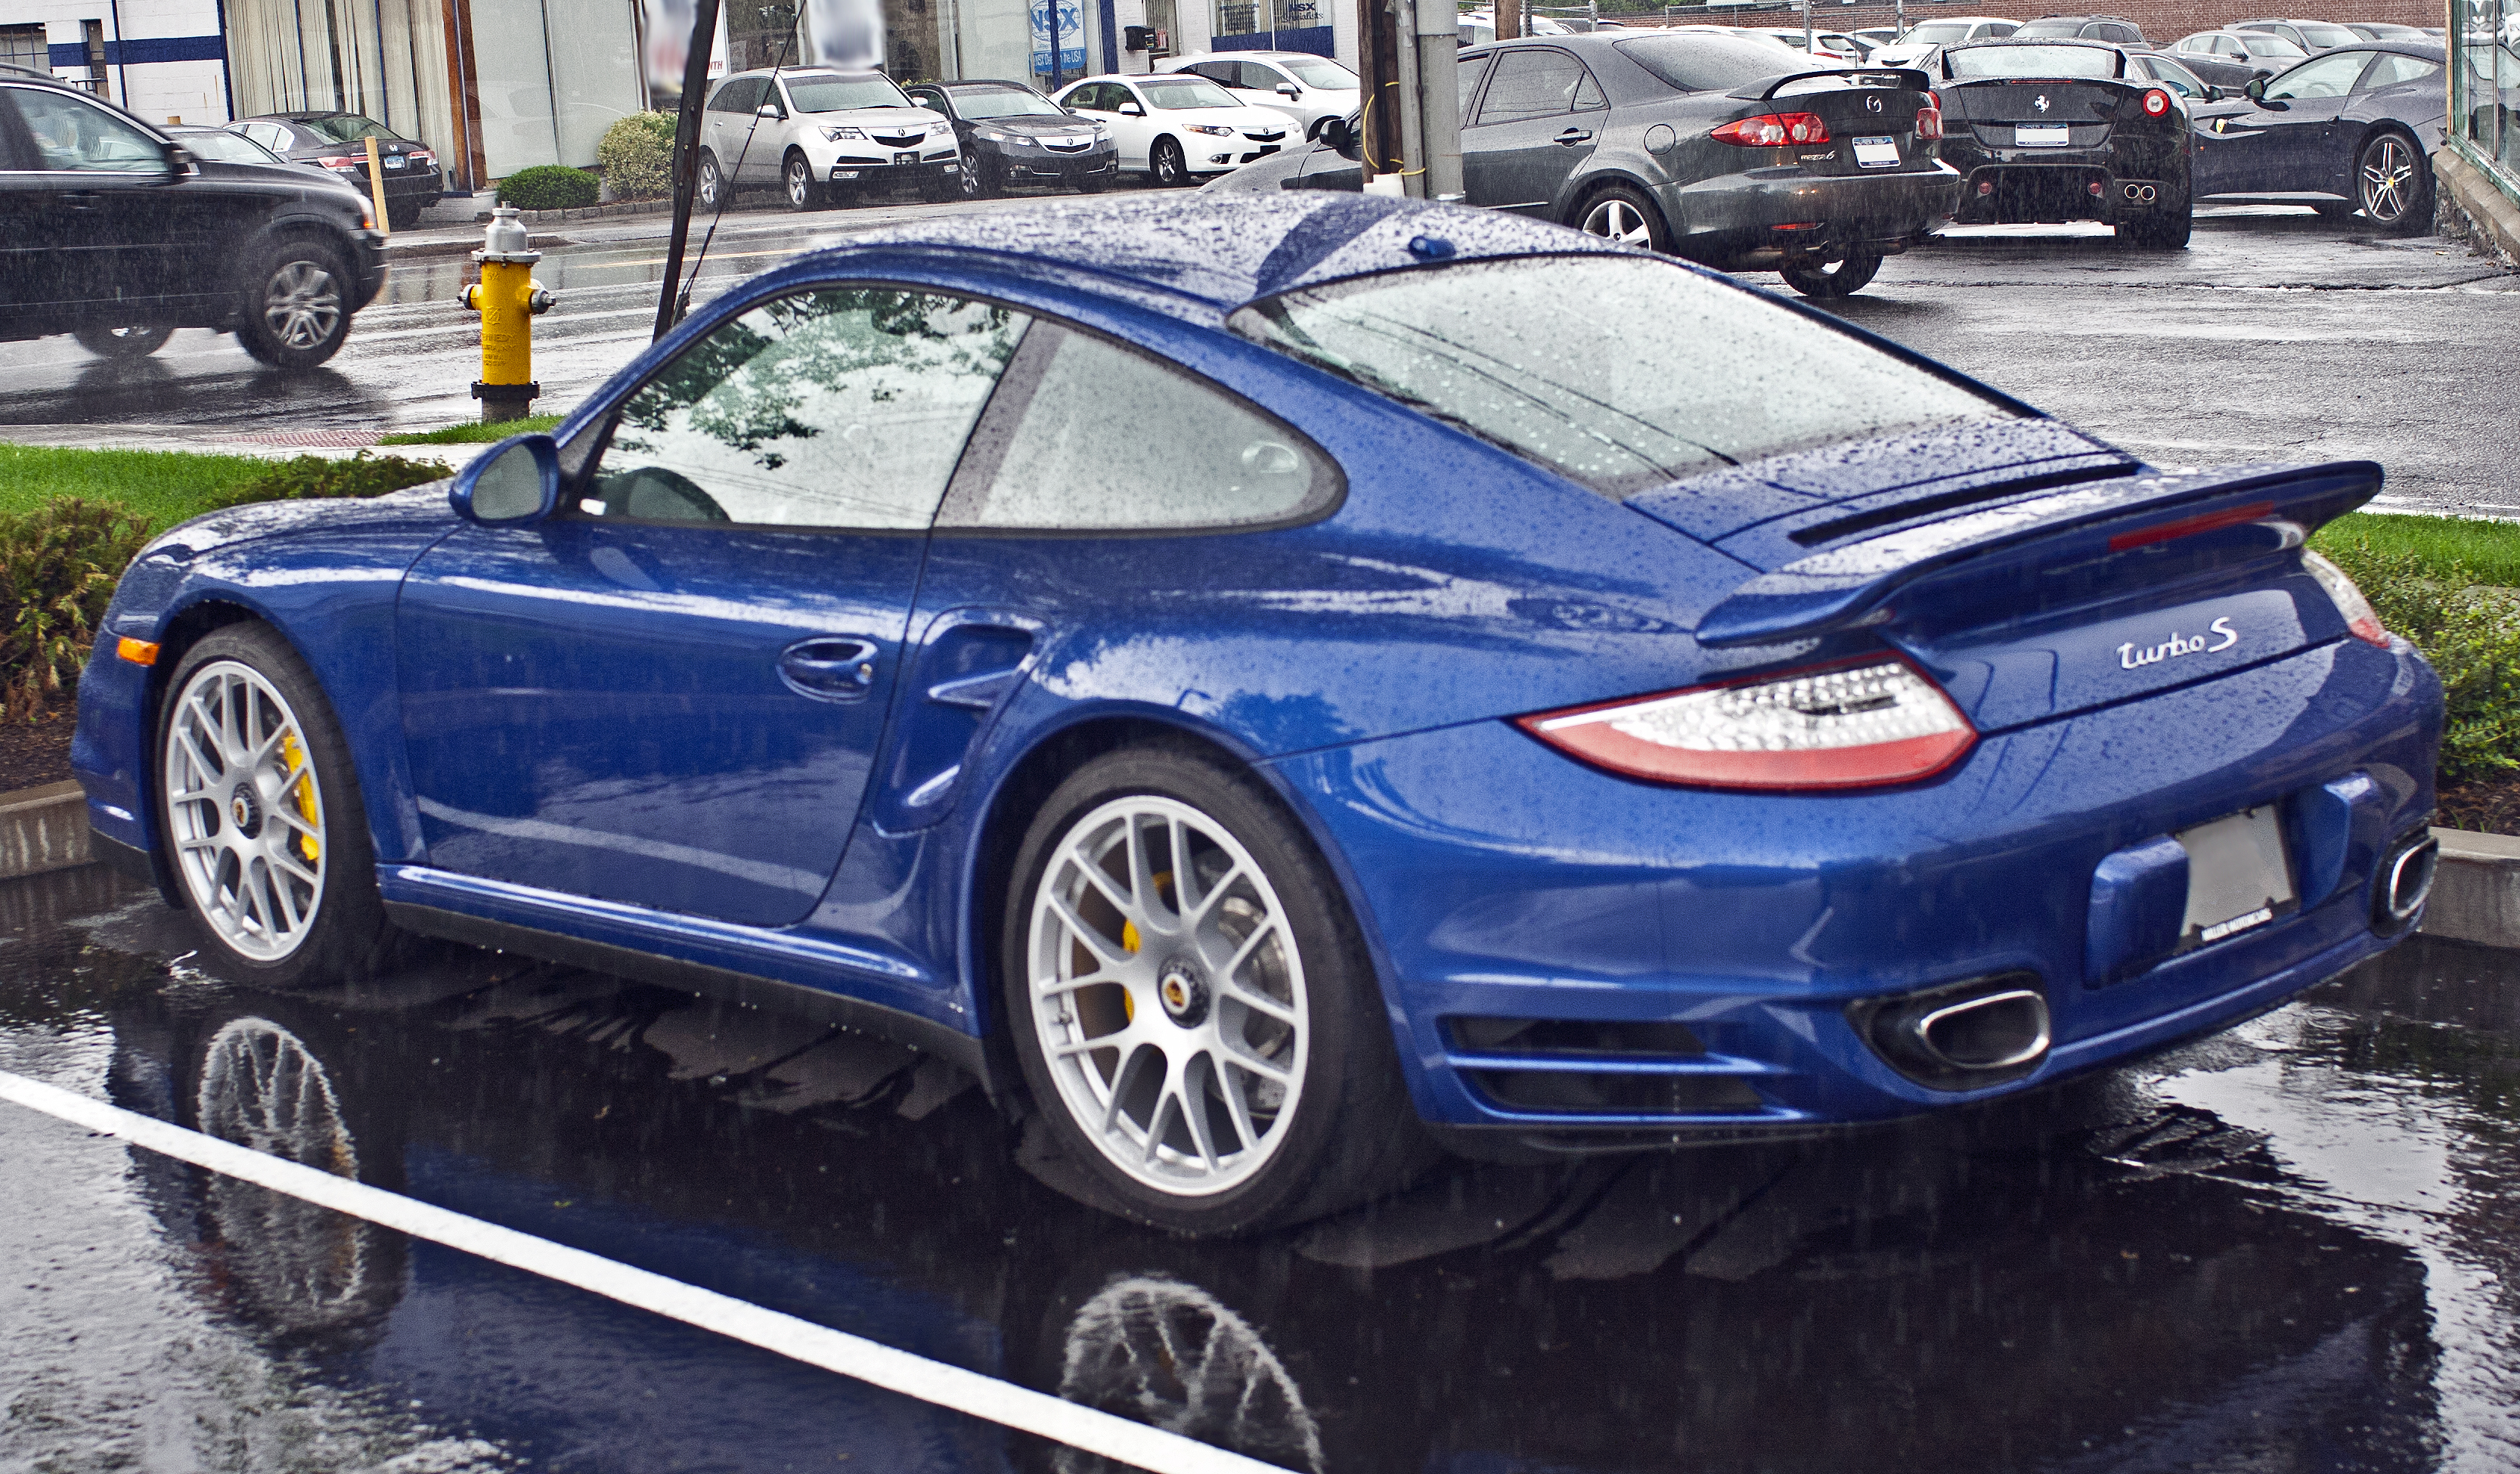 File 2012 porsche turbo s 997 jpg